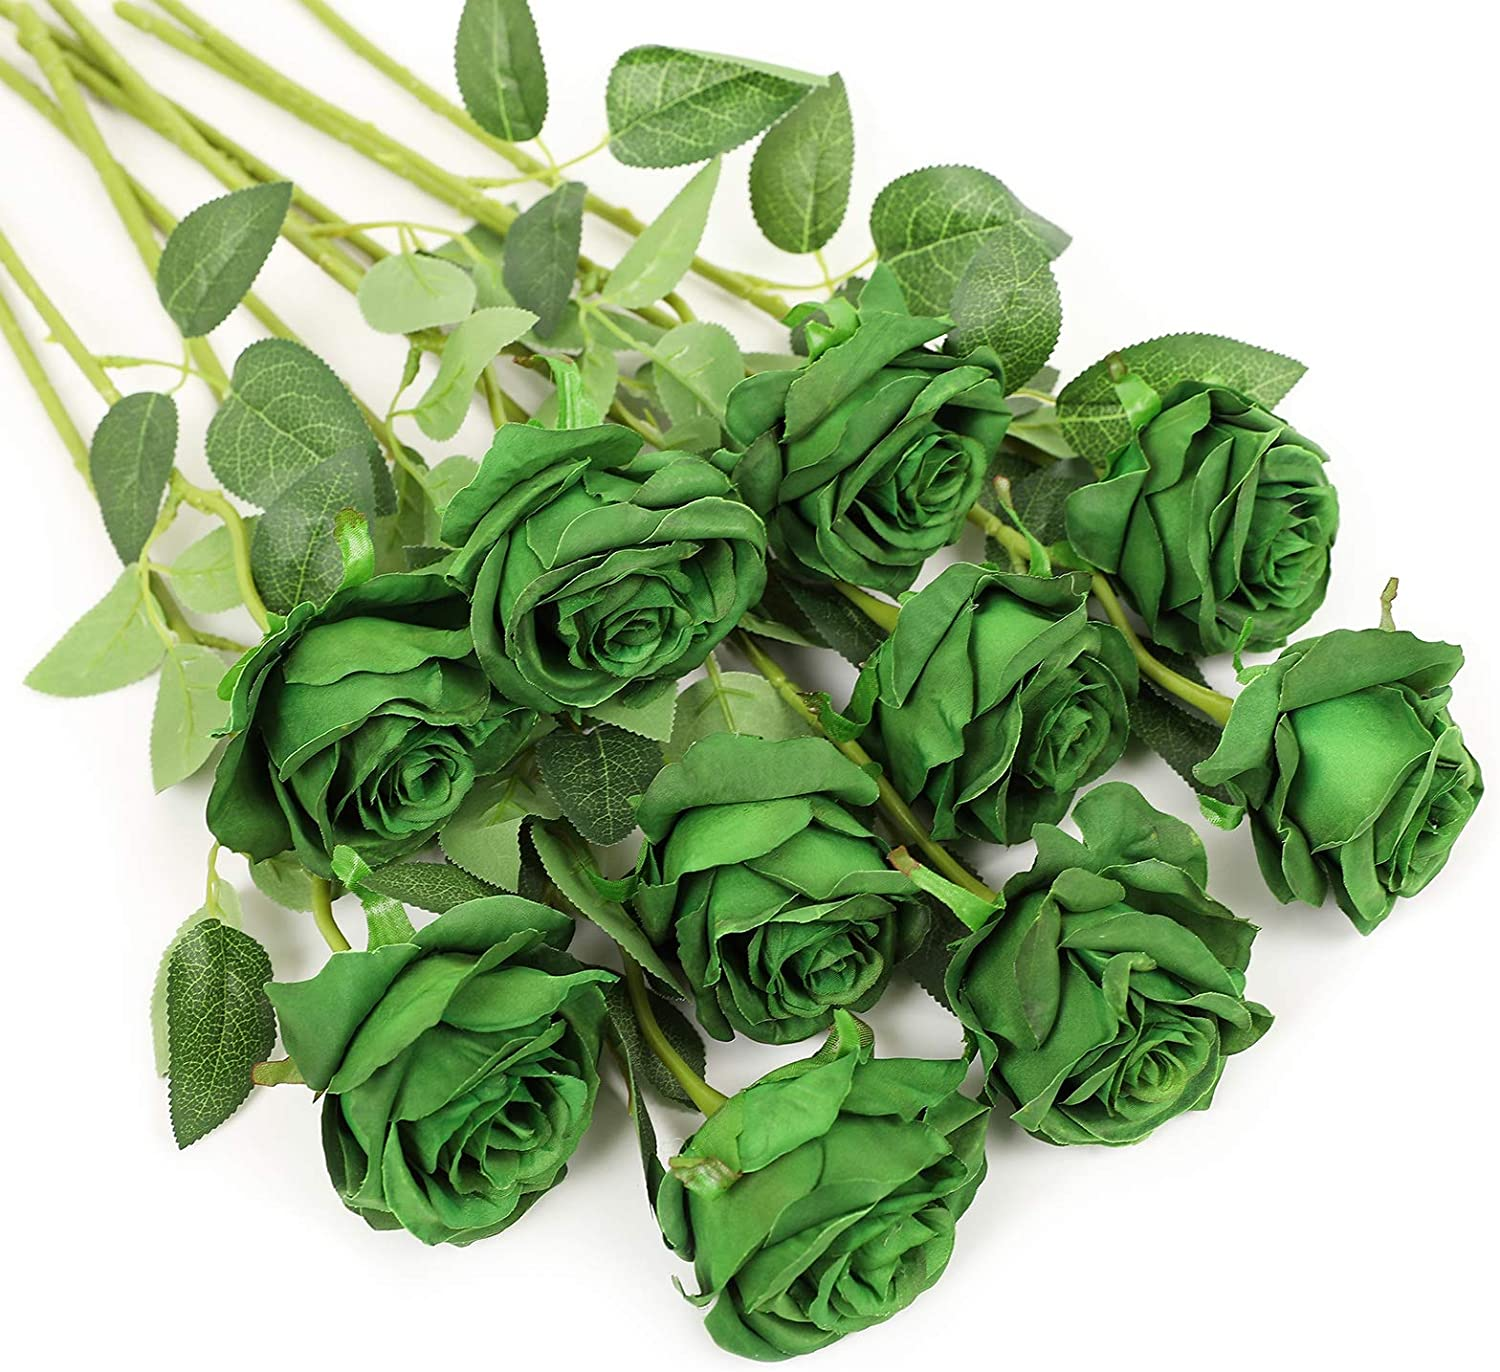 Veryhome Artificial Flowers Silk Roses Real Touch Bridal Wedding Bouquet for Home Garden Party Floral Decor 10 Pcs (Dark Green)